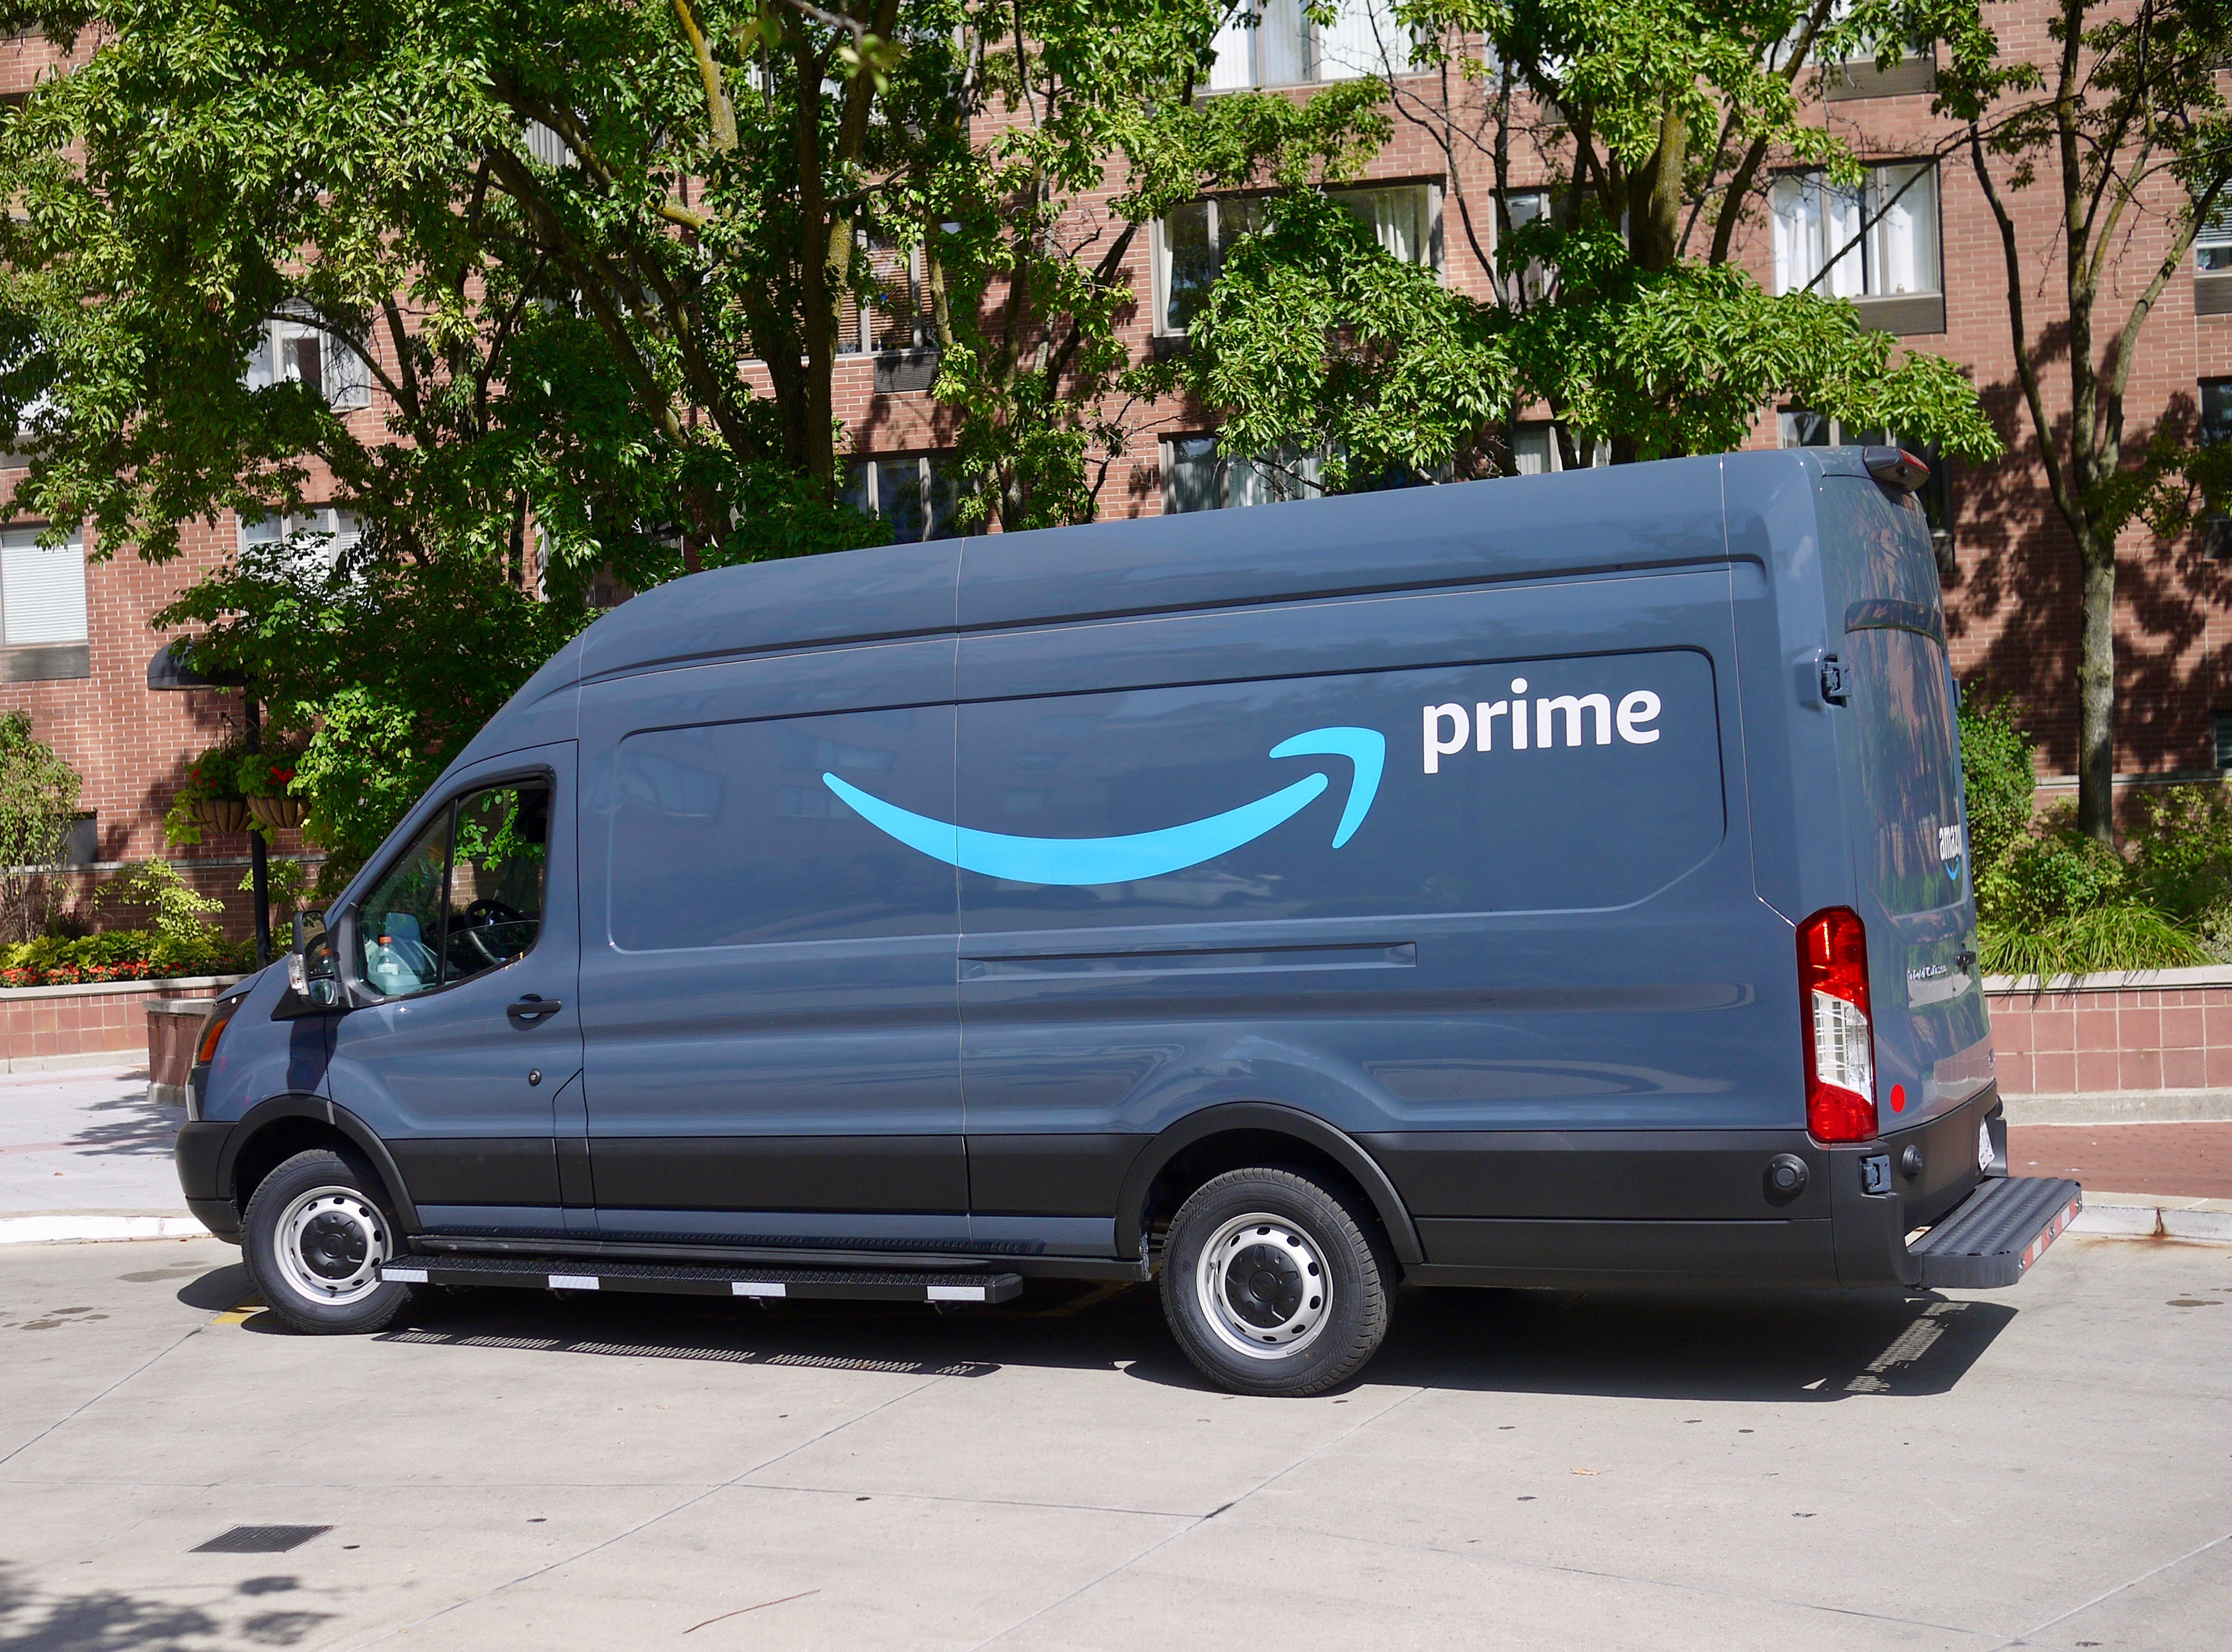 Amazon's new weapon to crush competition: $1 items delivered for free — by tomorrow